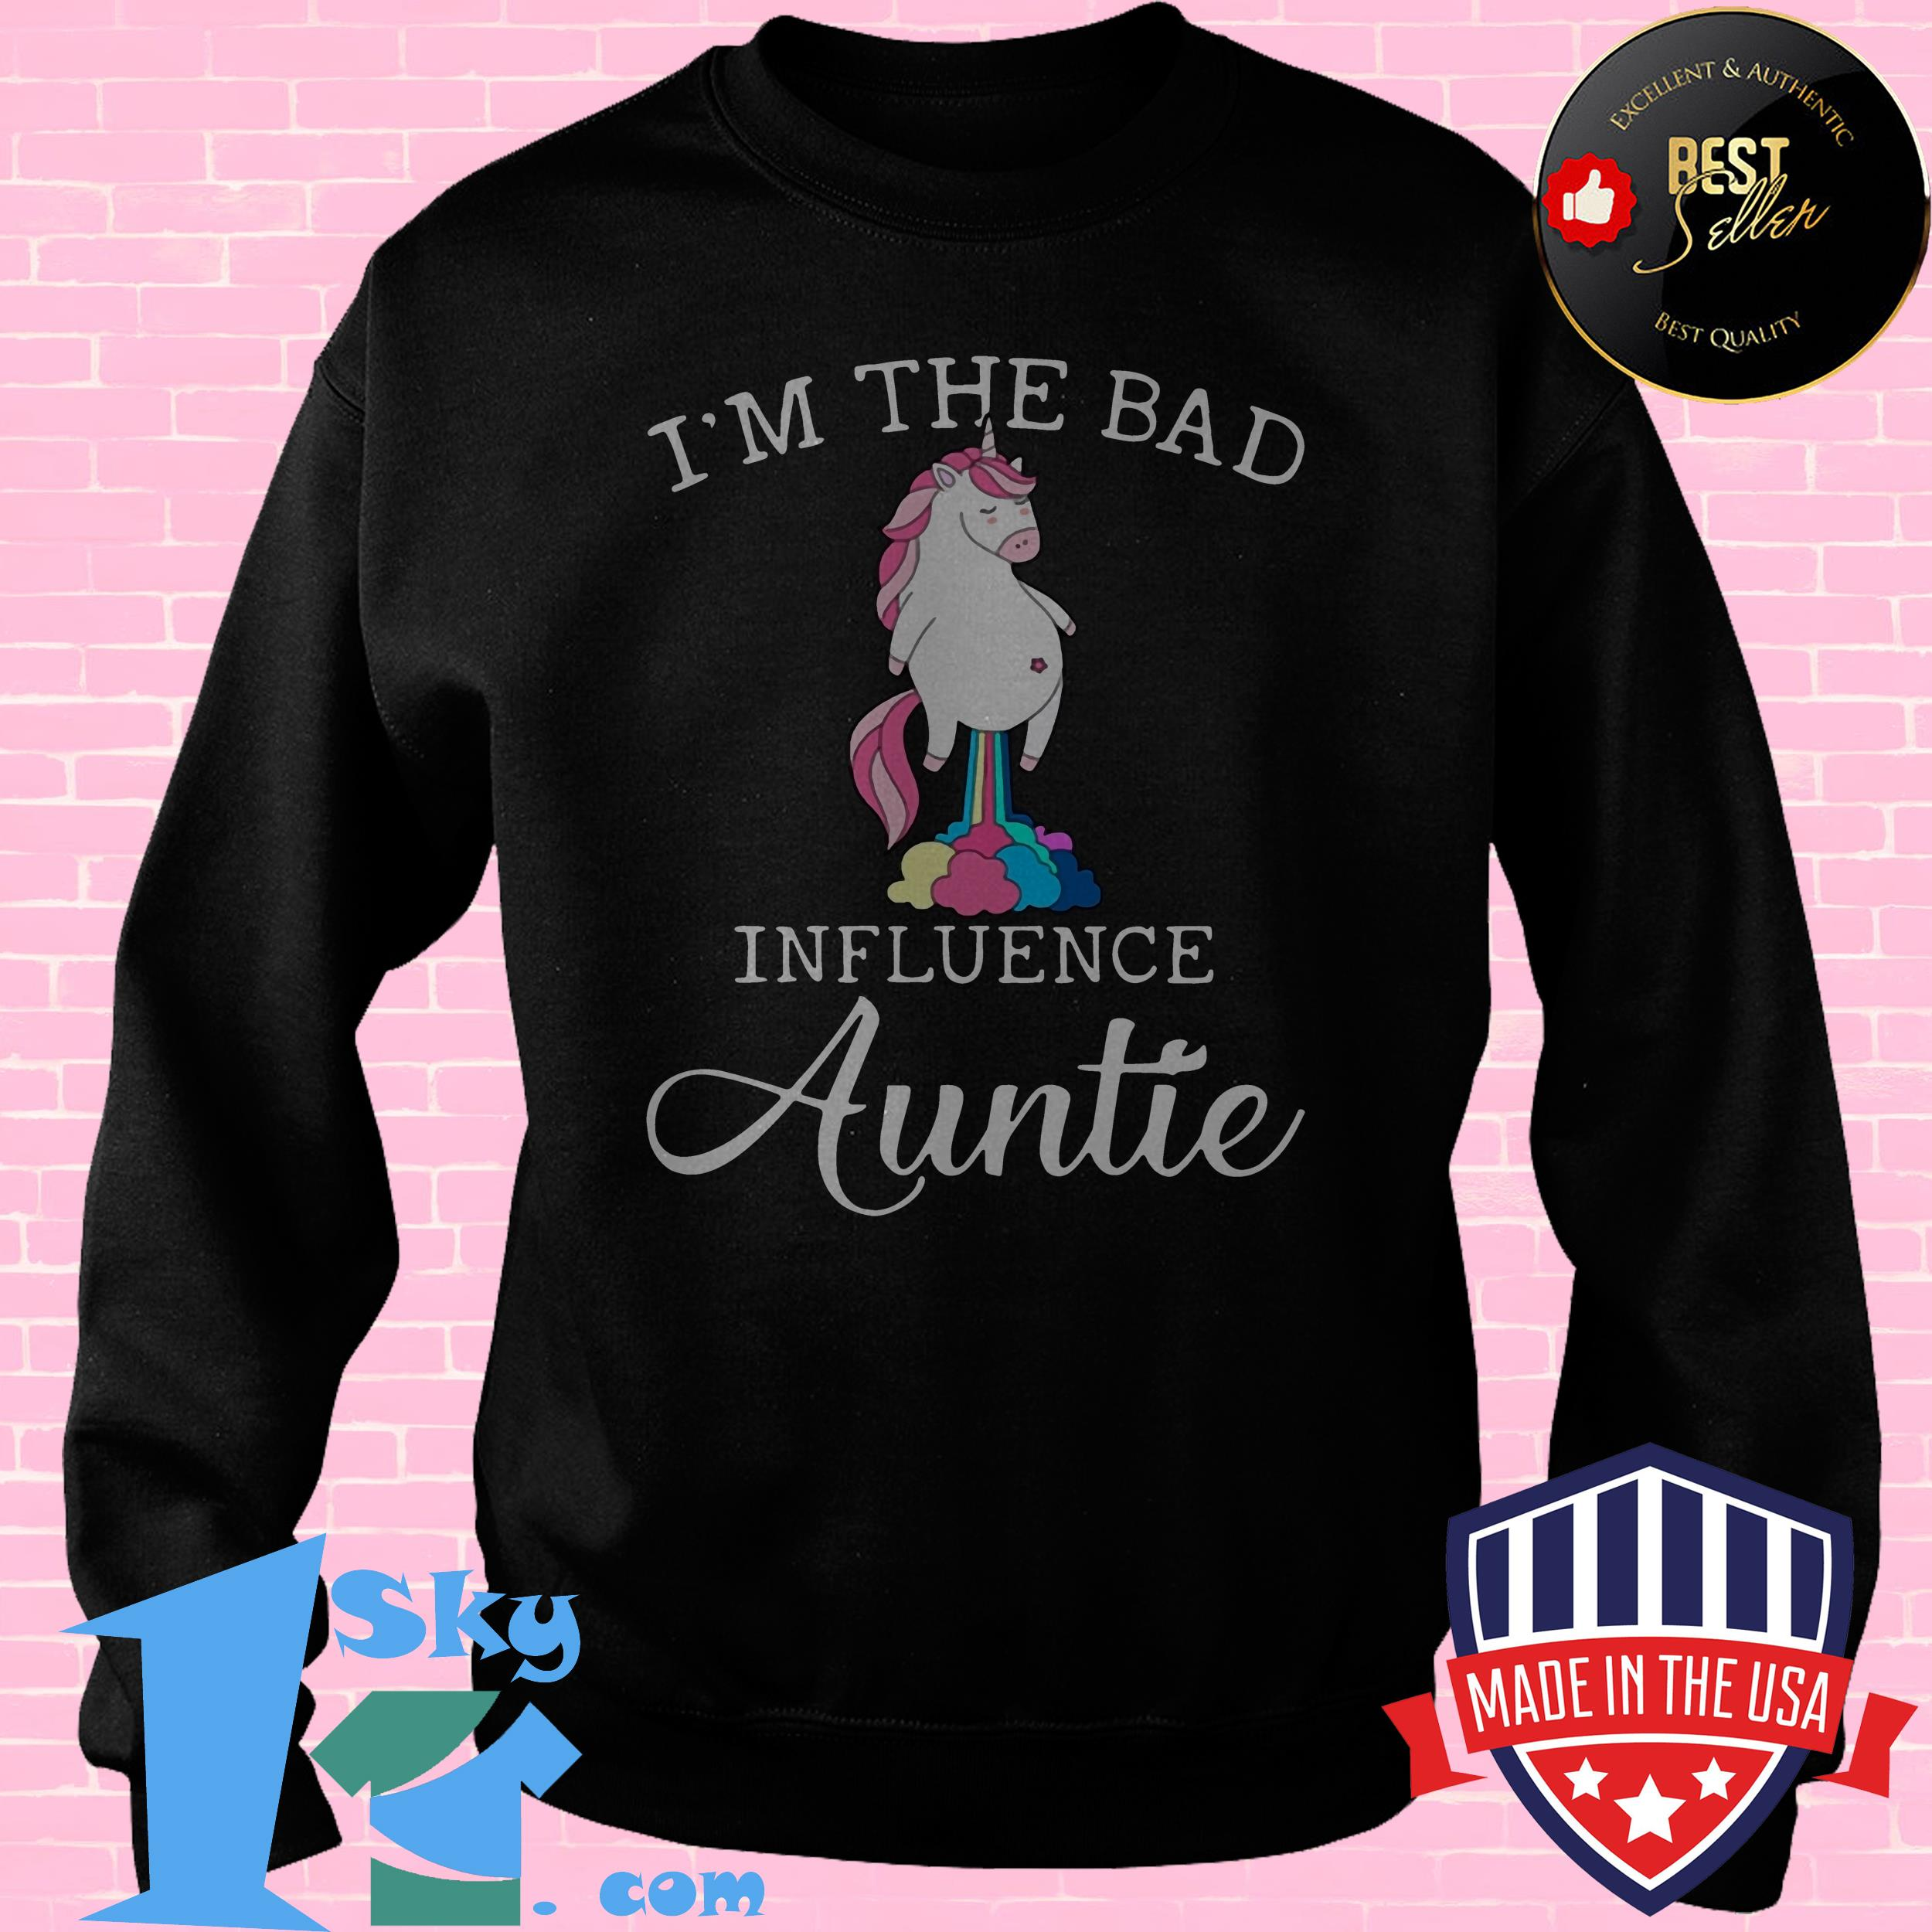 im the bad influence auntie fart unicorn sweatshirt - I'm The Bad Influence Auntie Fart Unicorn shirt